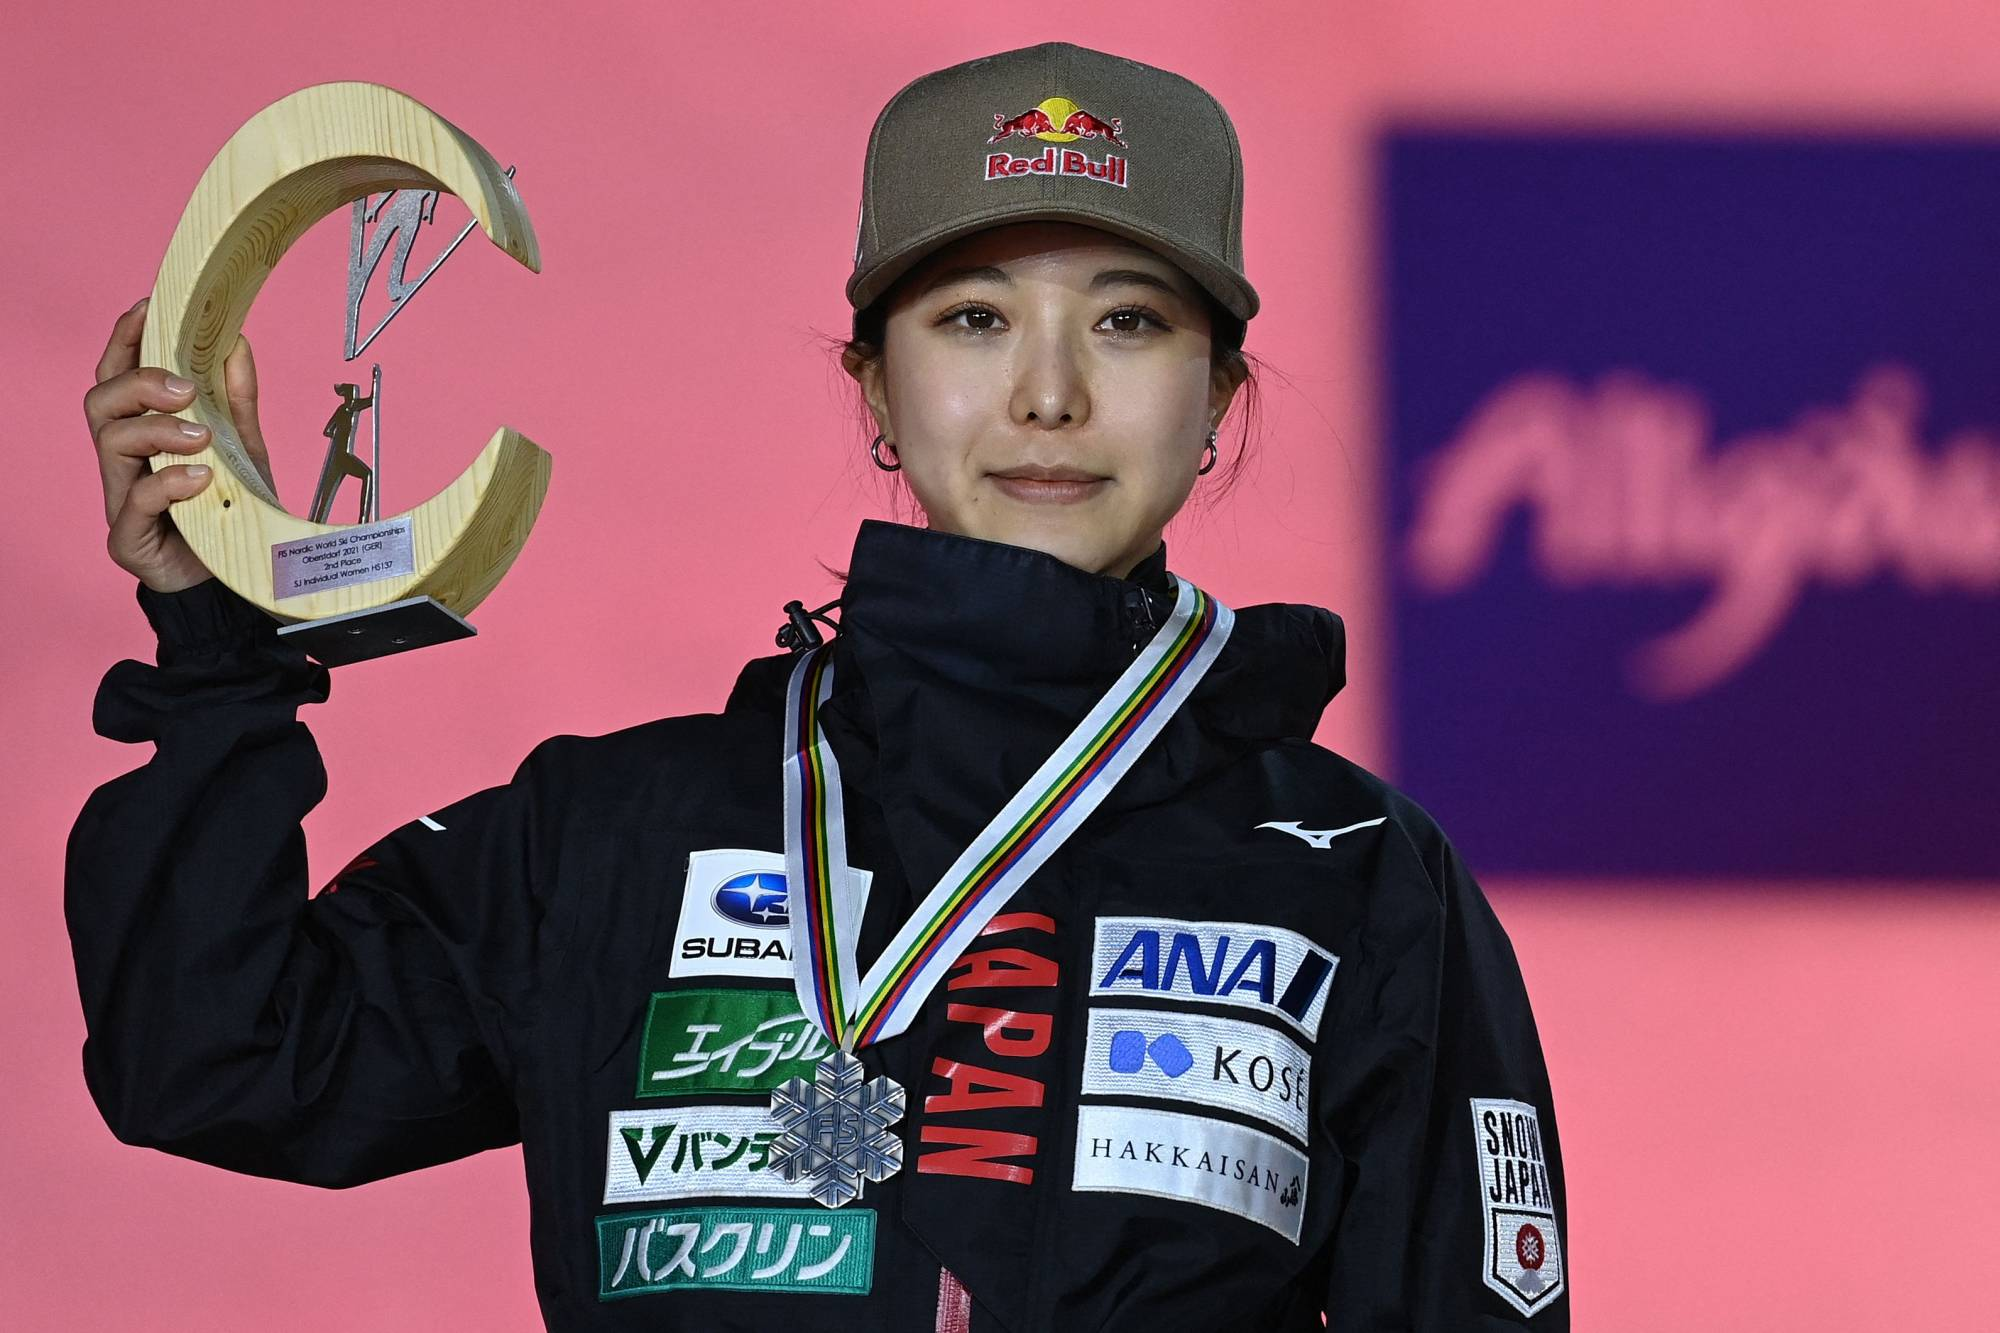 Sara Takanashi holds her trophy on the podium after finishing second in the women's large hill jumping event at the FIS Nordic Ski World Championships in Oberstdorf, Germany, on Wednesday. | AFP-JIJI